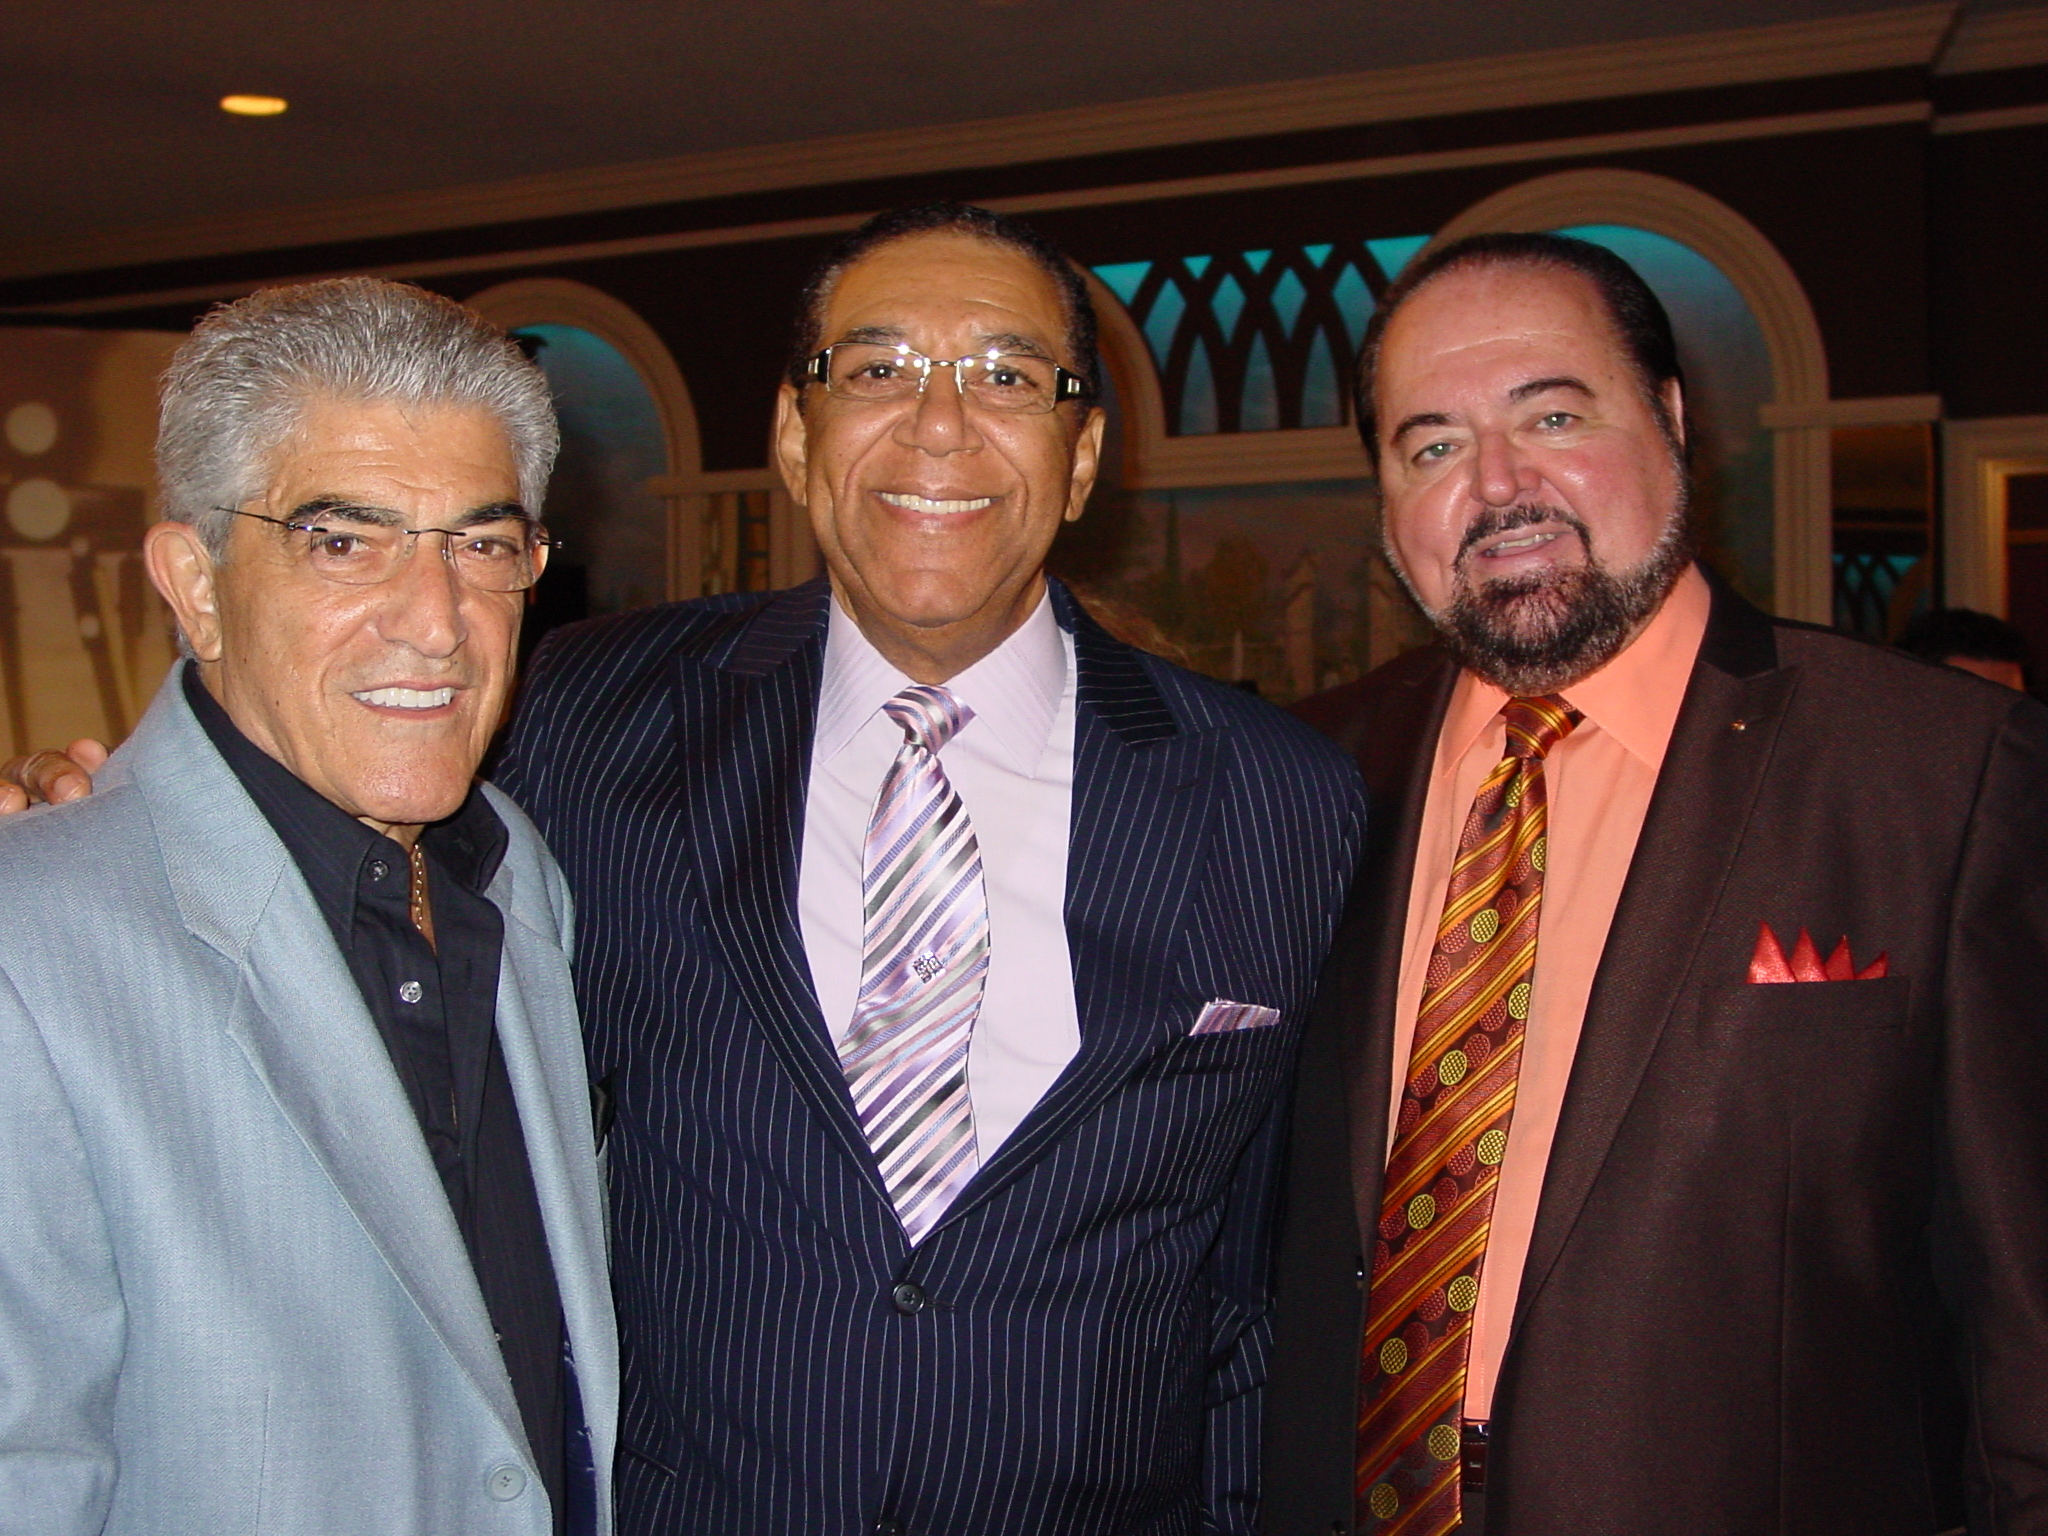 Actor Frank Vincent and MC Jay Michaels